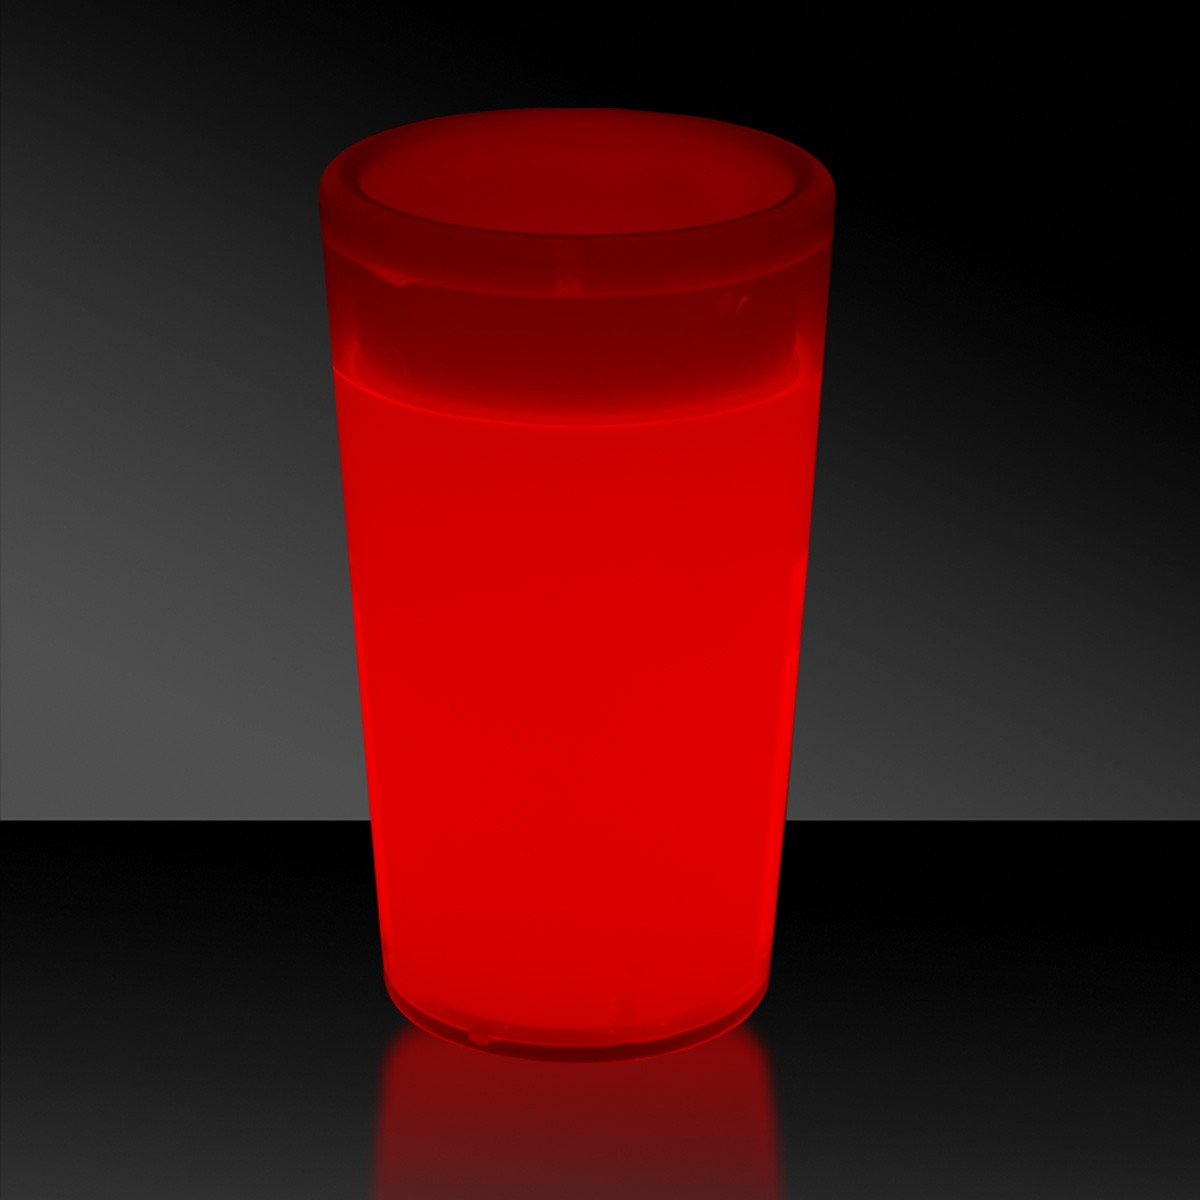 RED-TAPERED GLOW SHOT GLASS